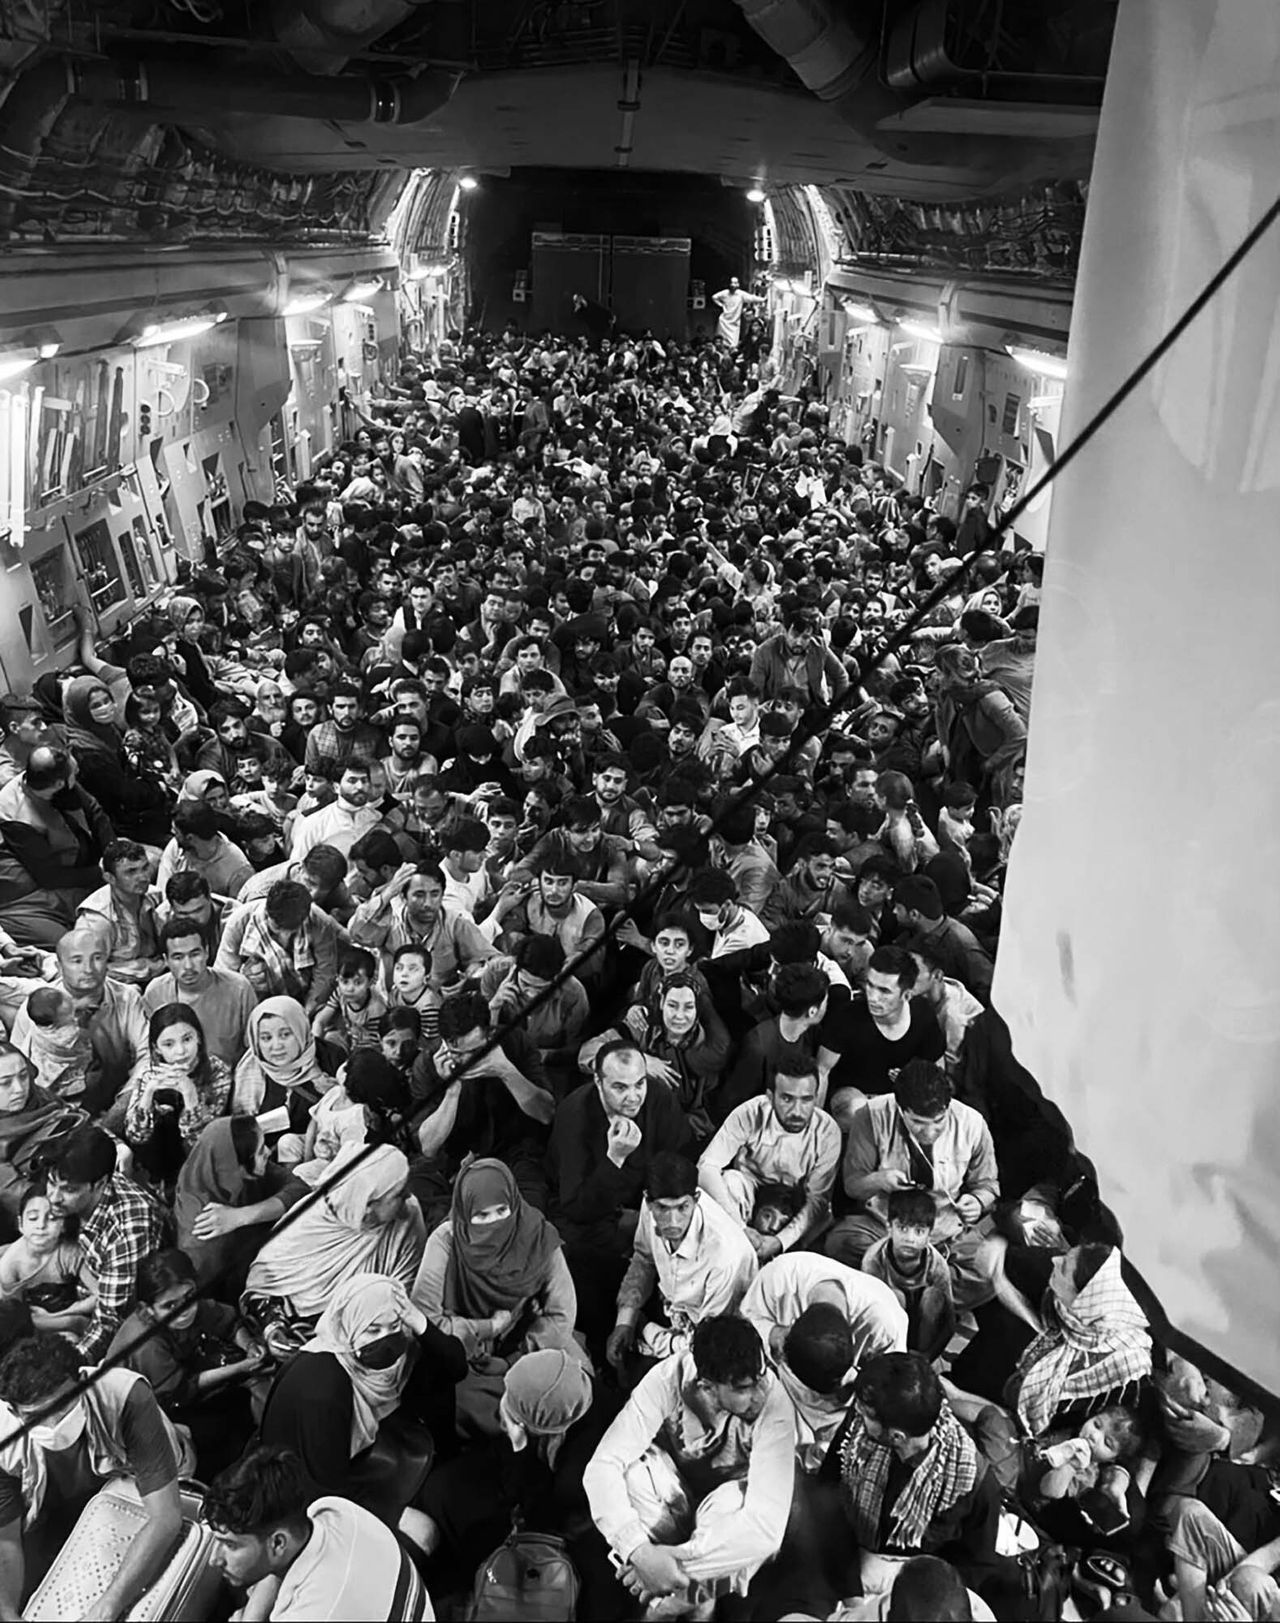 Afghan citizens are packed inside a U.S. Air Force C-17 Globemaster III as they're transported from Hamid Karzai International Airport in Afghanistan last Sunday.